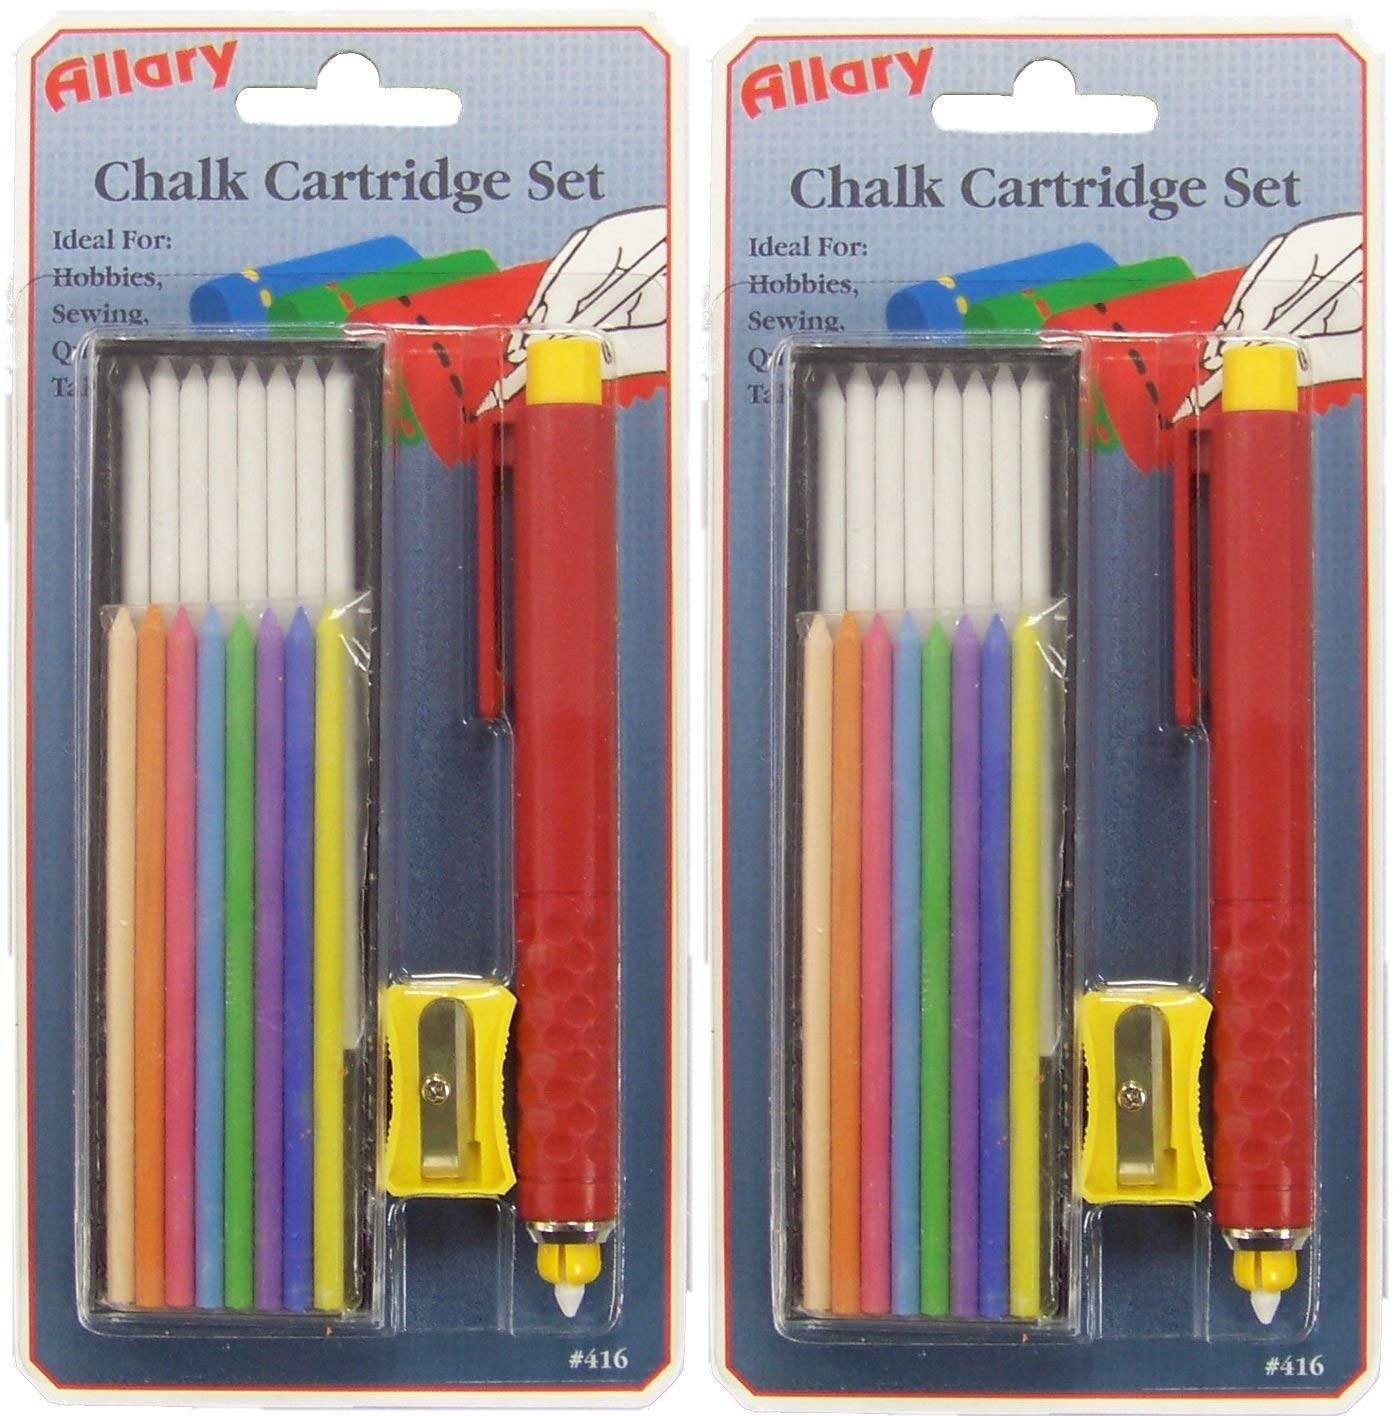 Allary Chalk Cartridge Set (Вundlе оf Тwо) by Allary